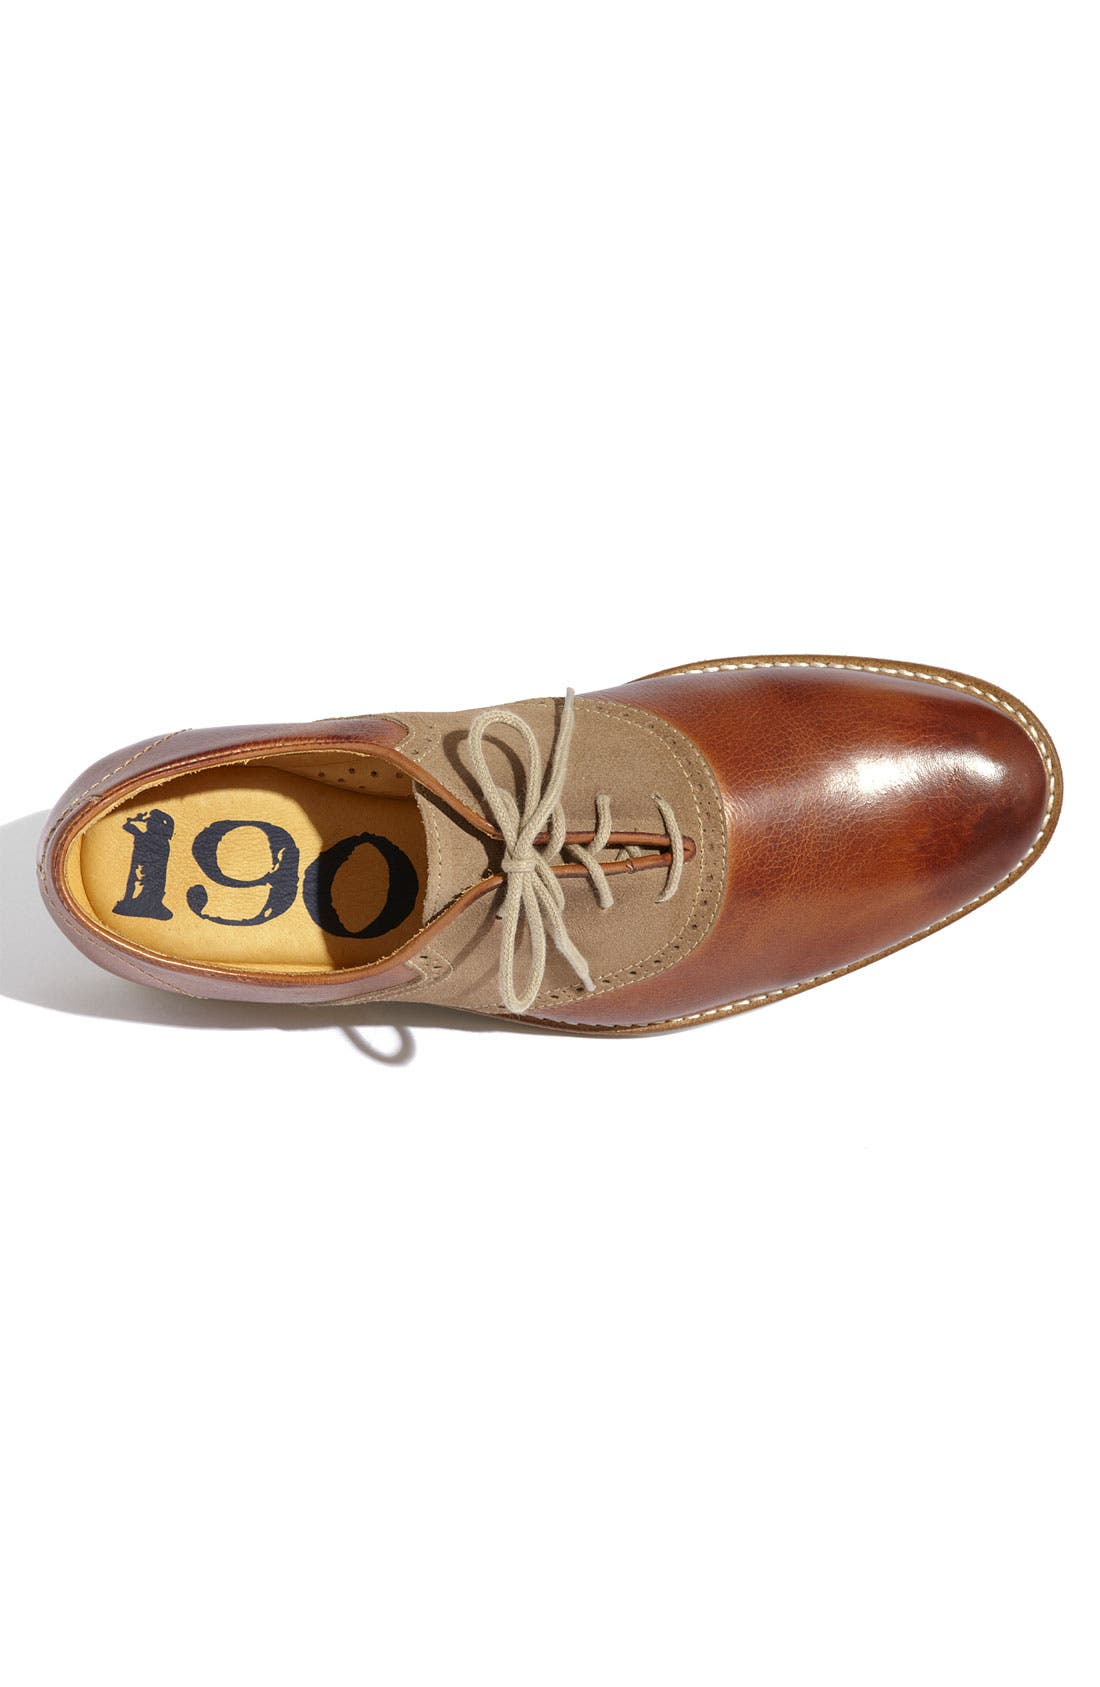 Alternate Image 3  - 1901 'Bennett' Saddle Shoe (Men)